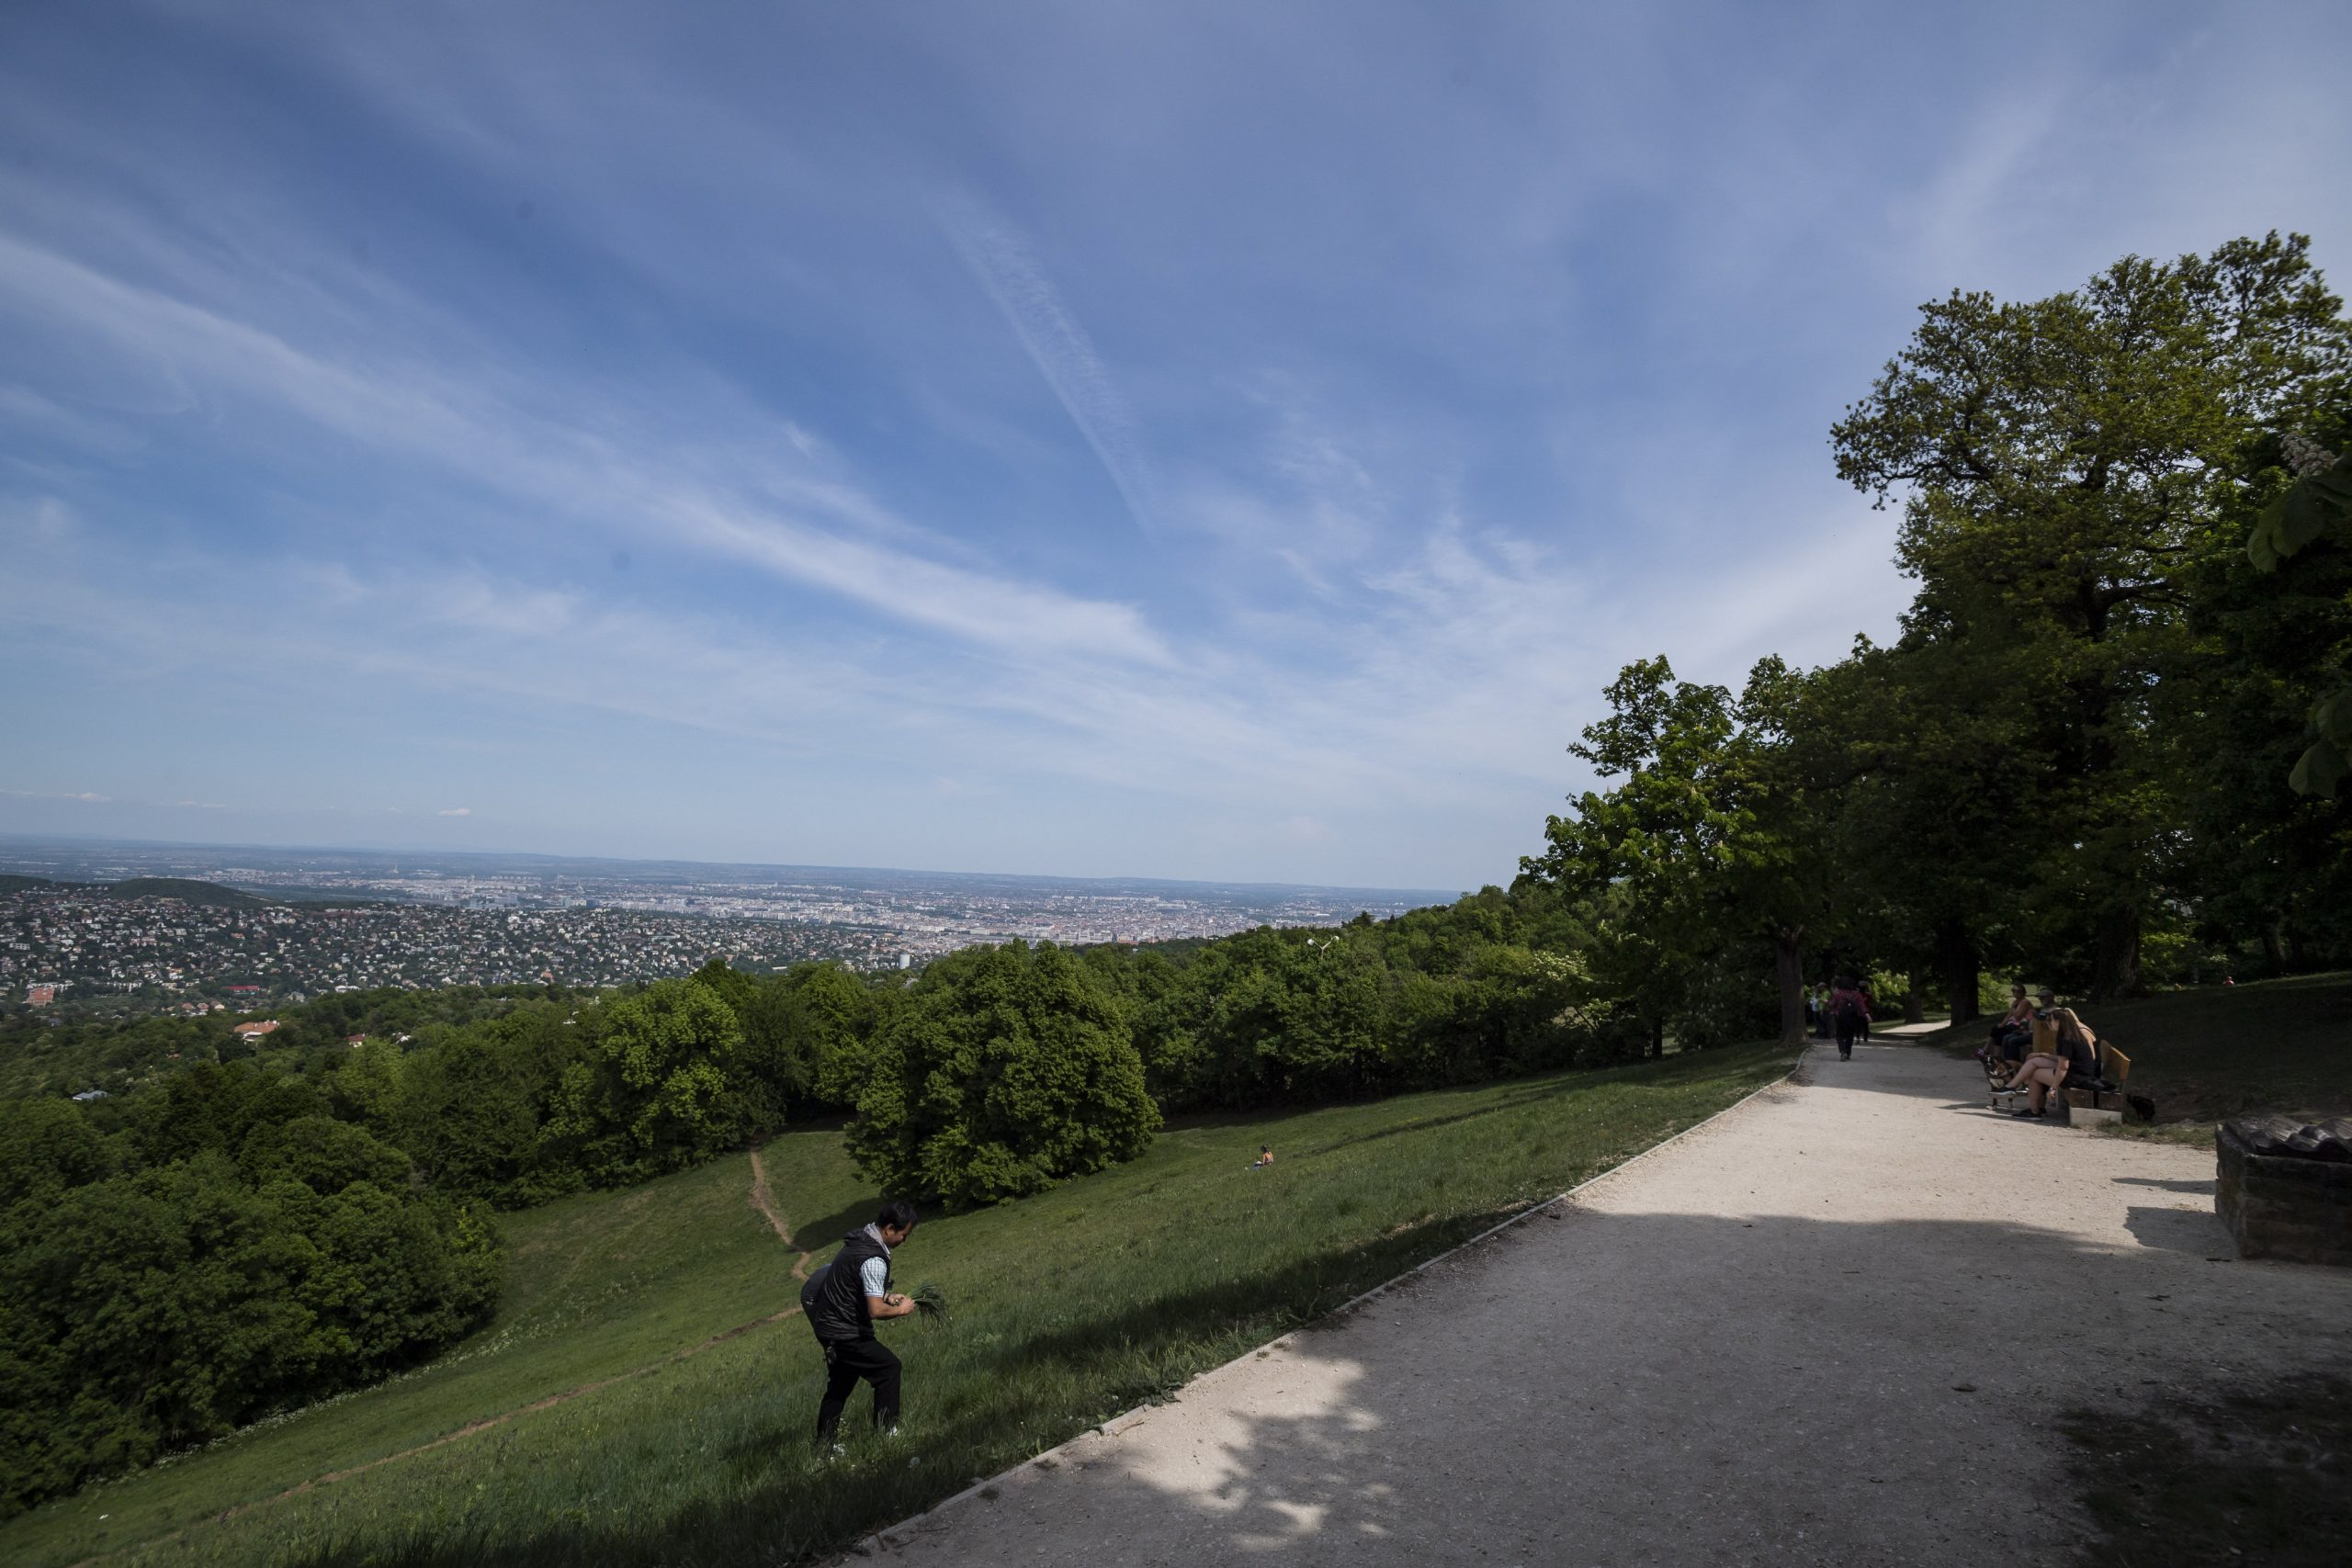 Normafa, Budapest's Popular Hiking Destination Under Renovation to Be 'More Comfortable' for People